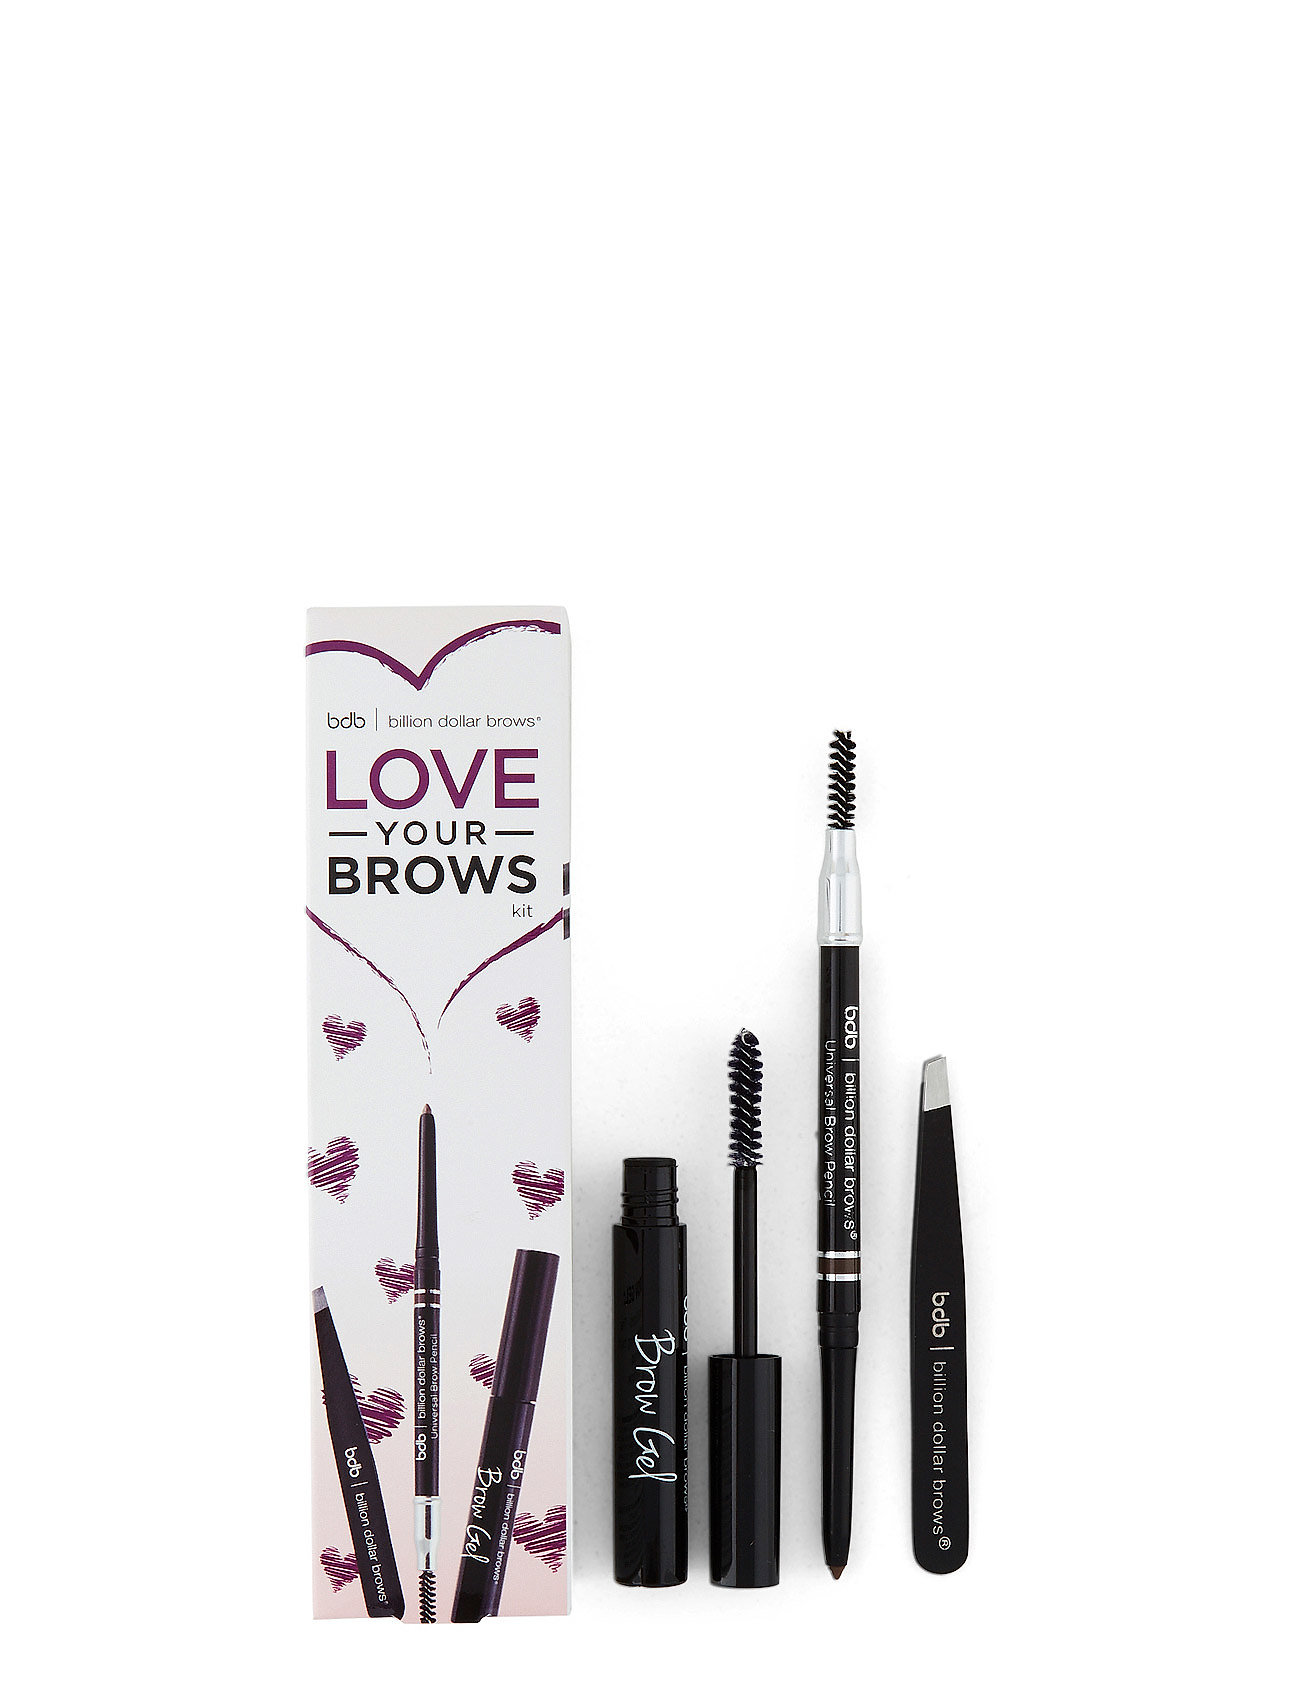 bdb billion dollar brows Love your brows kit fra boozt.com dk